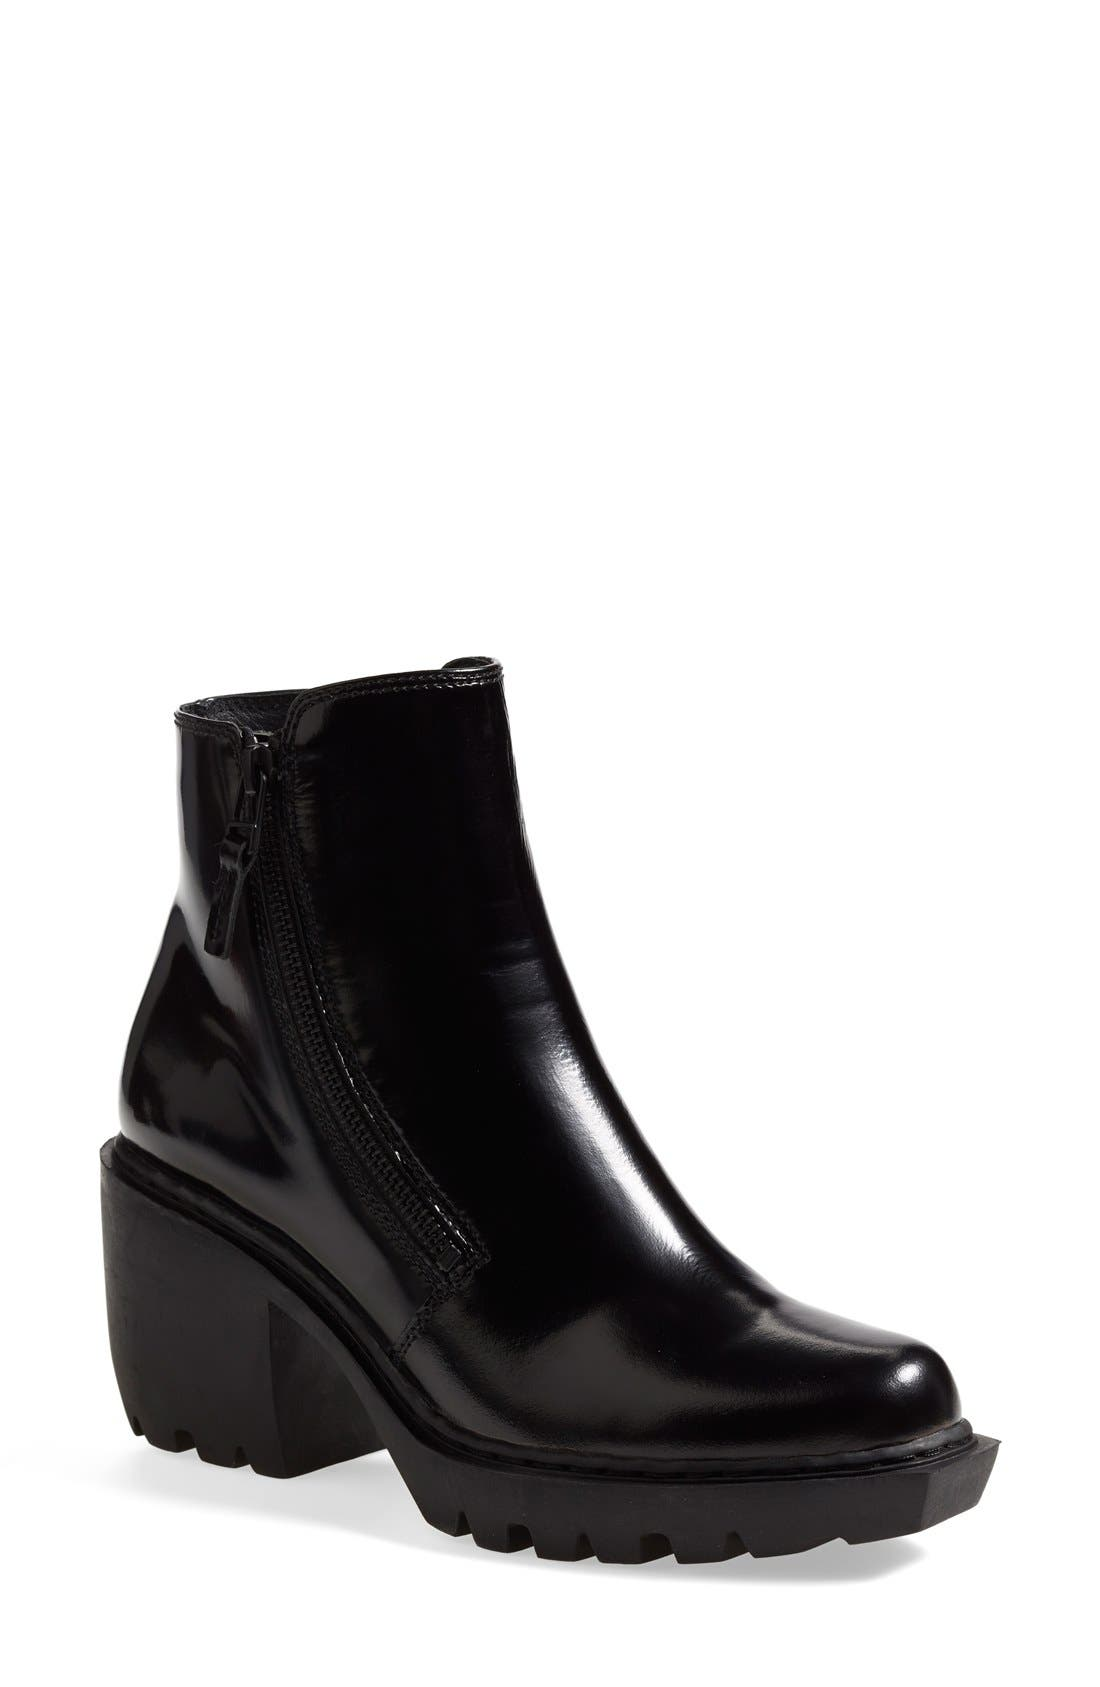 Alternate Image 1 Selected - Opening Ceremony 'Grunge' Double Zip Bootie